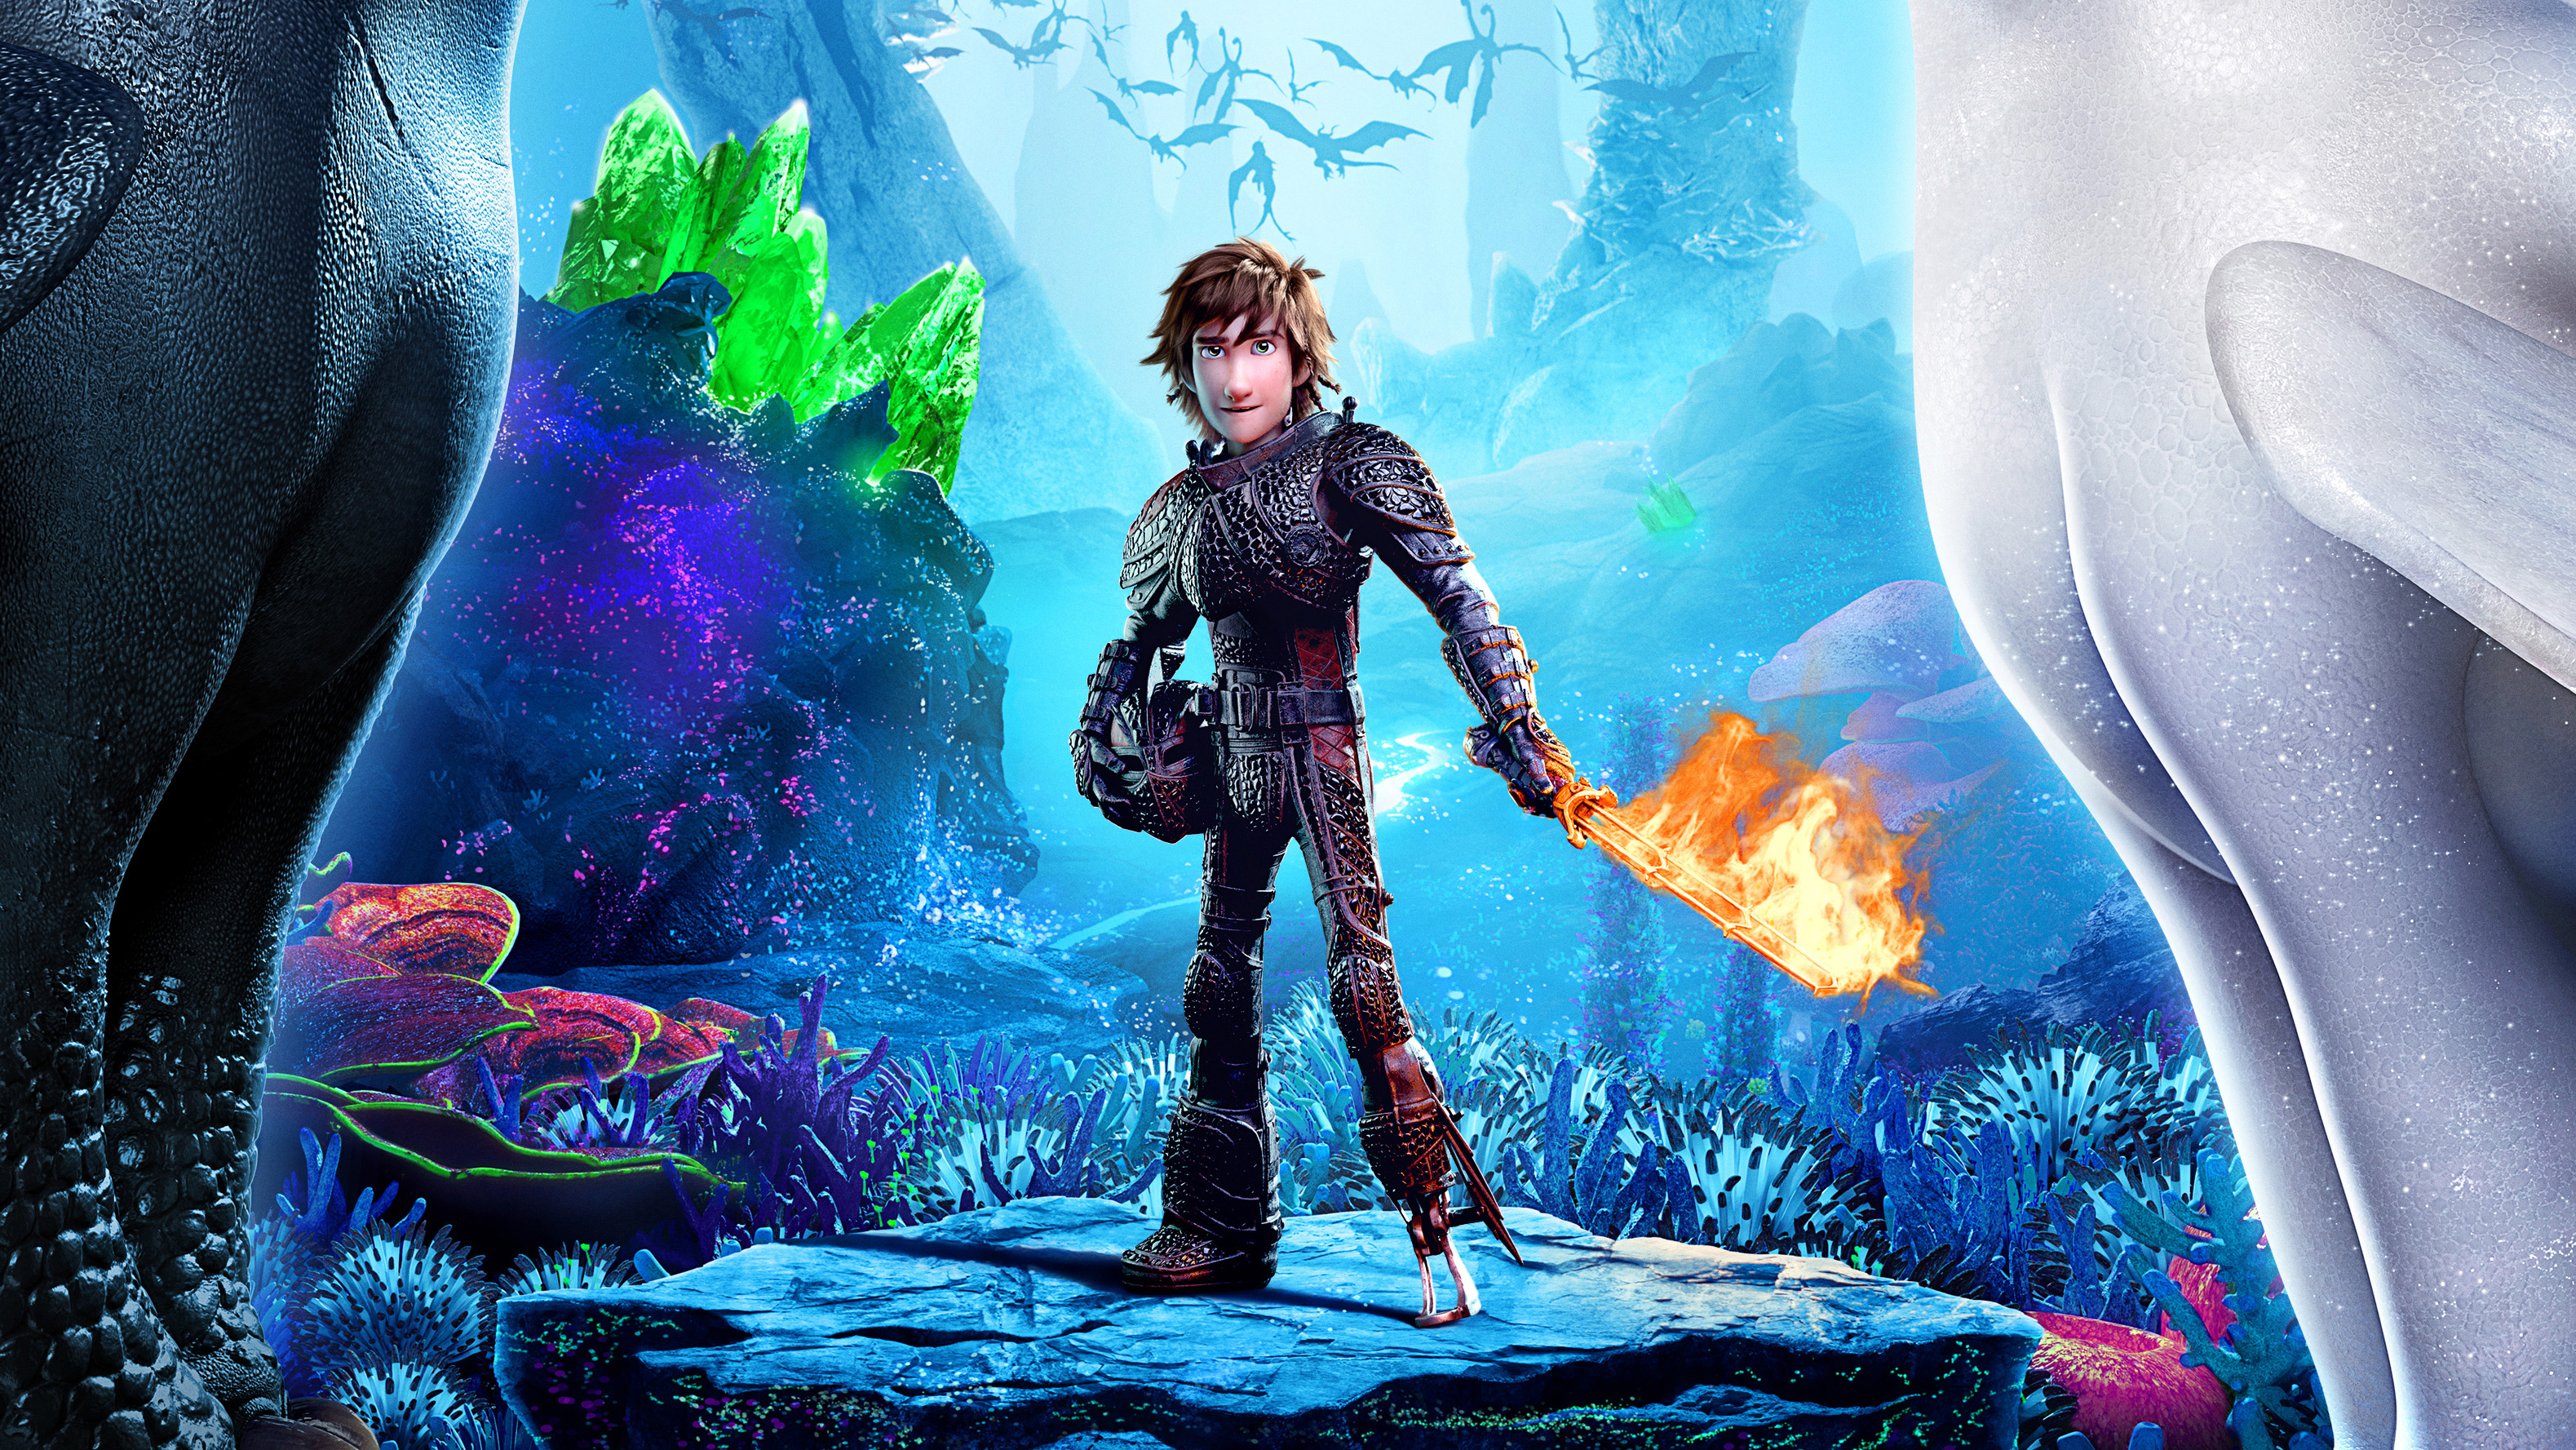 2048x2048 Hiccup How To Train Your Dragon 3 2019 4k Ipad